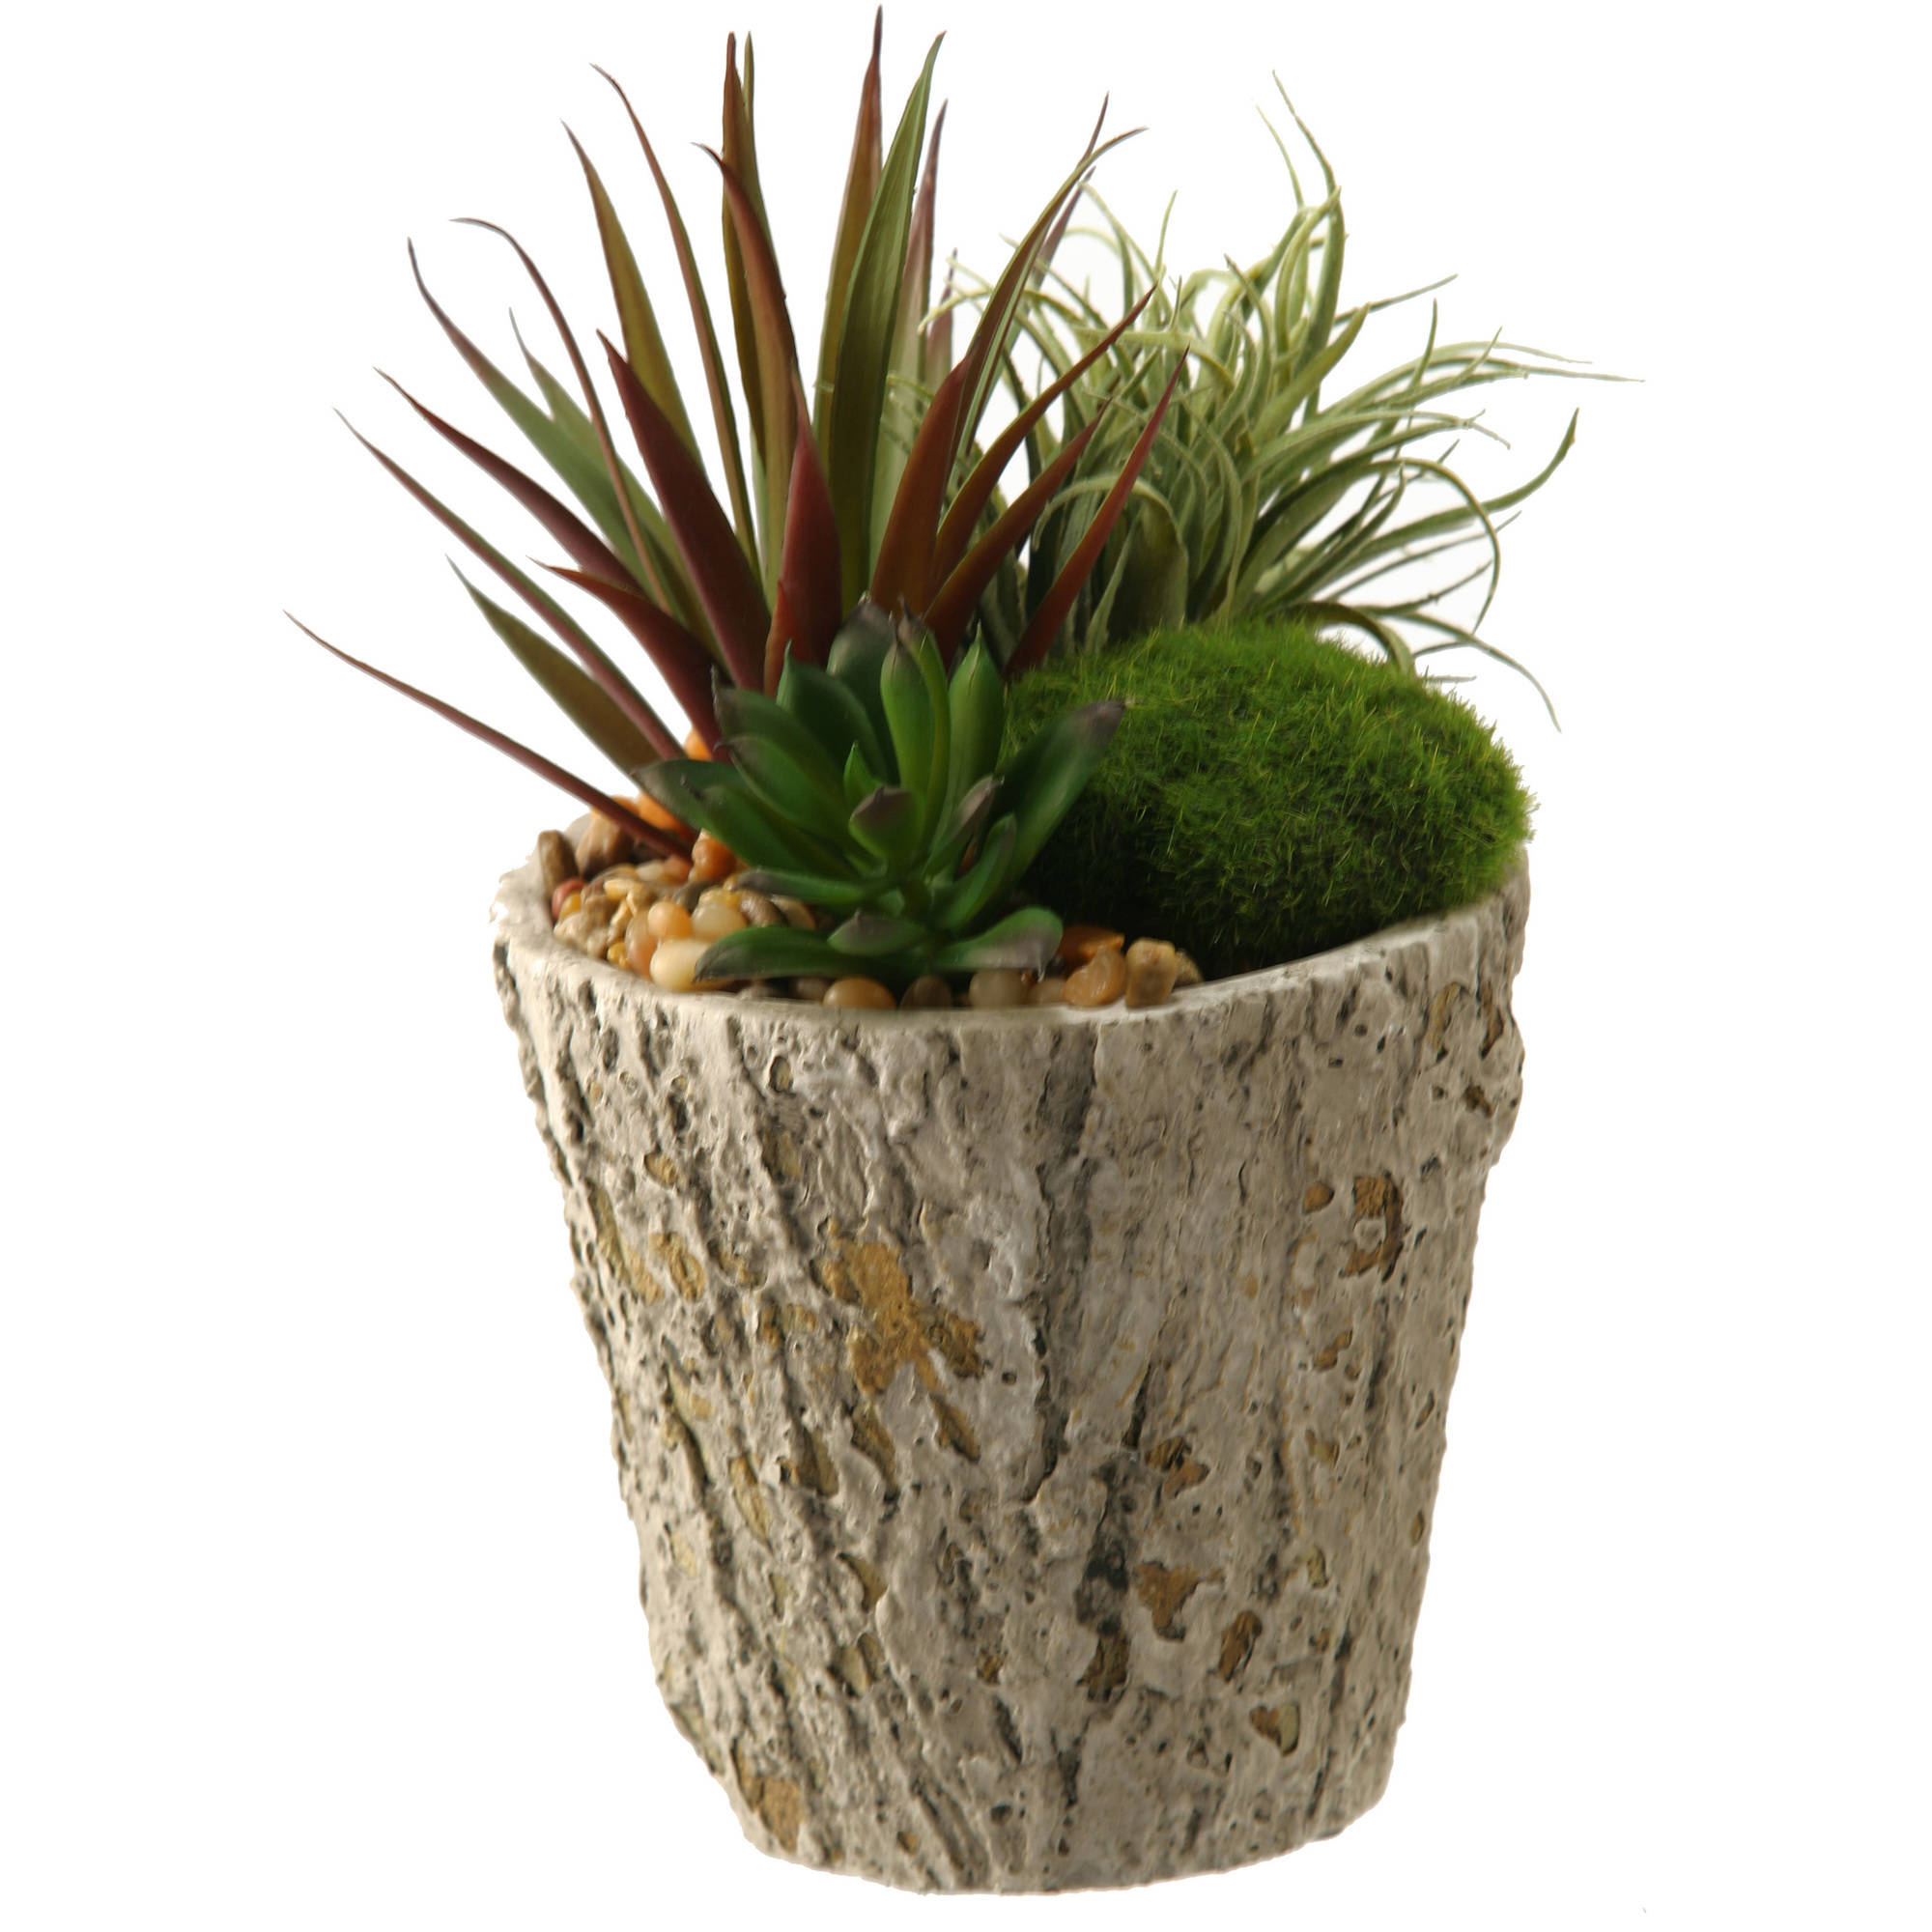 D&W Silks Easter Grass and Succulents in Weathered Oak Look Cement Planter